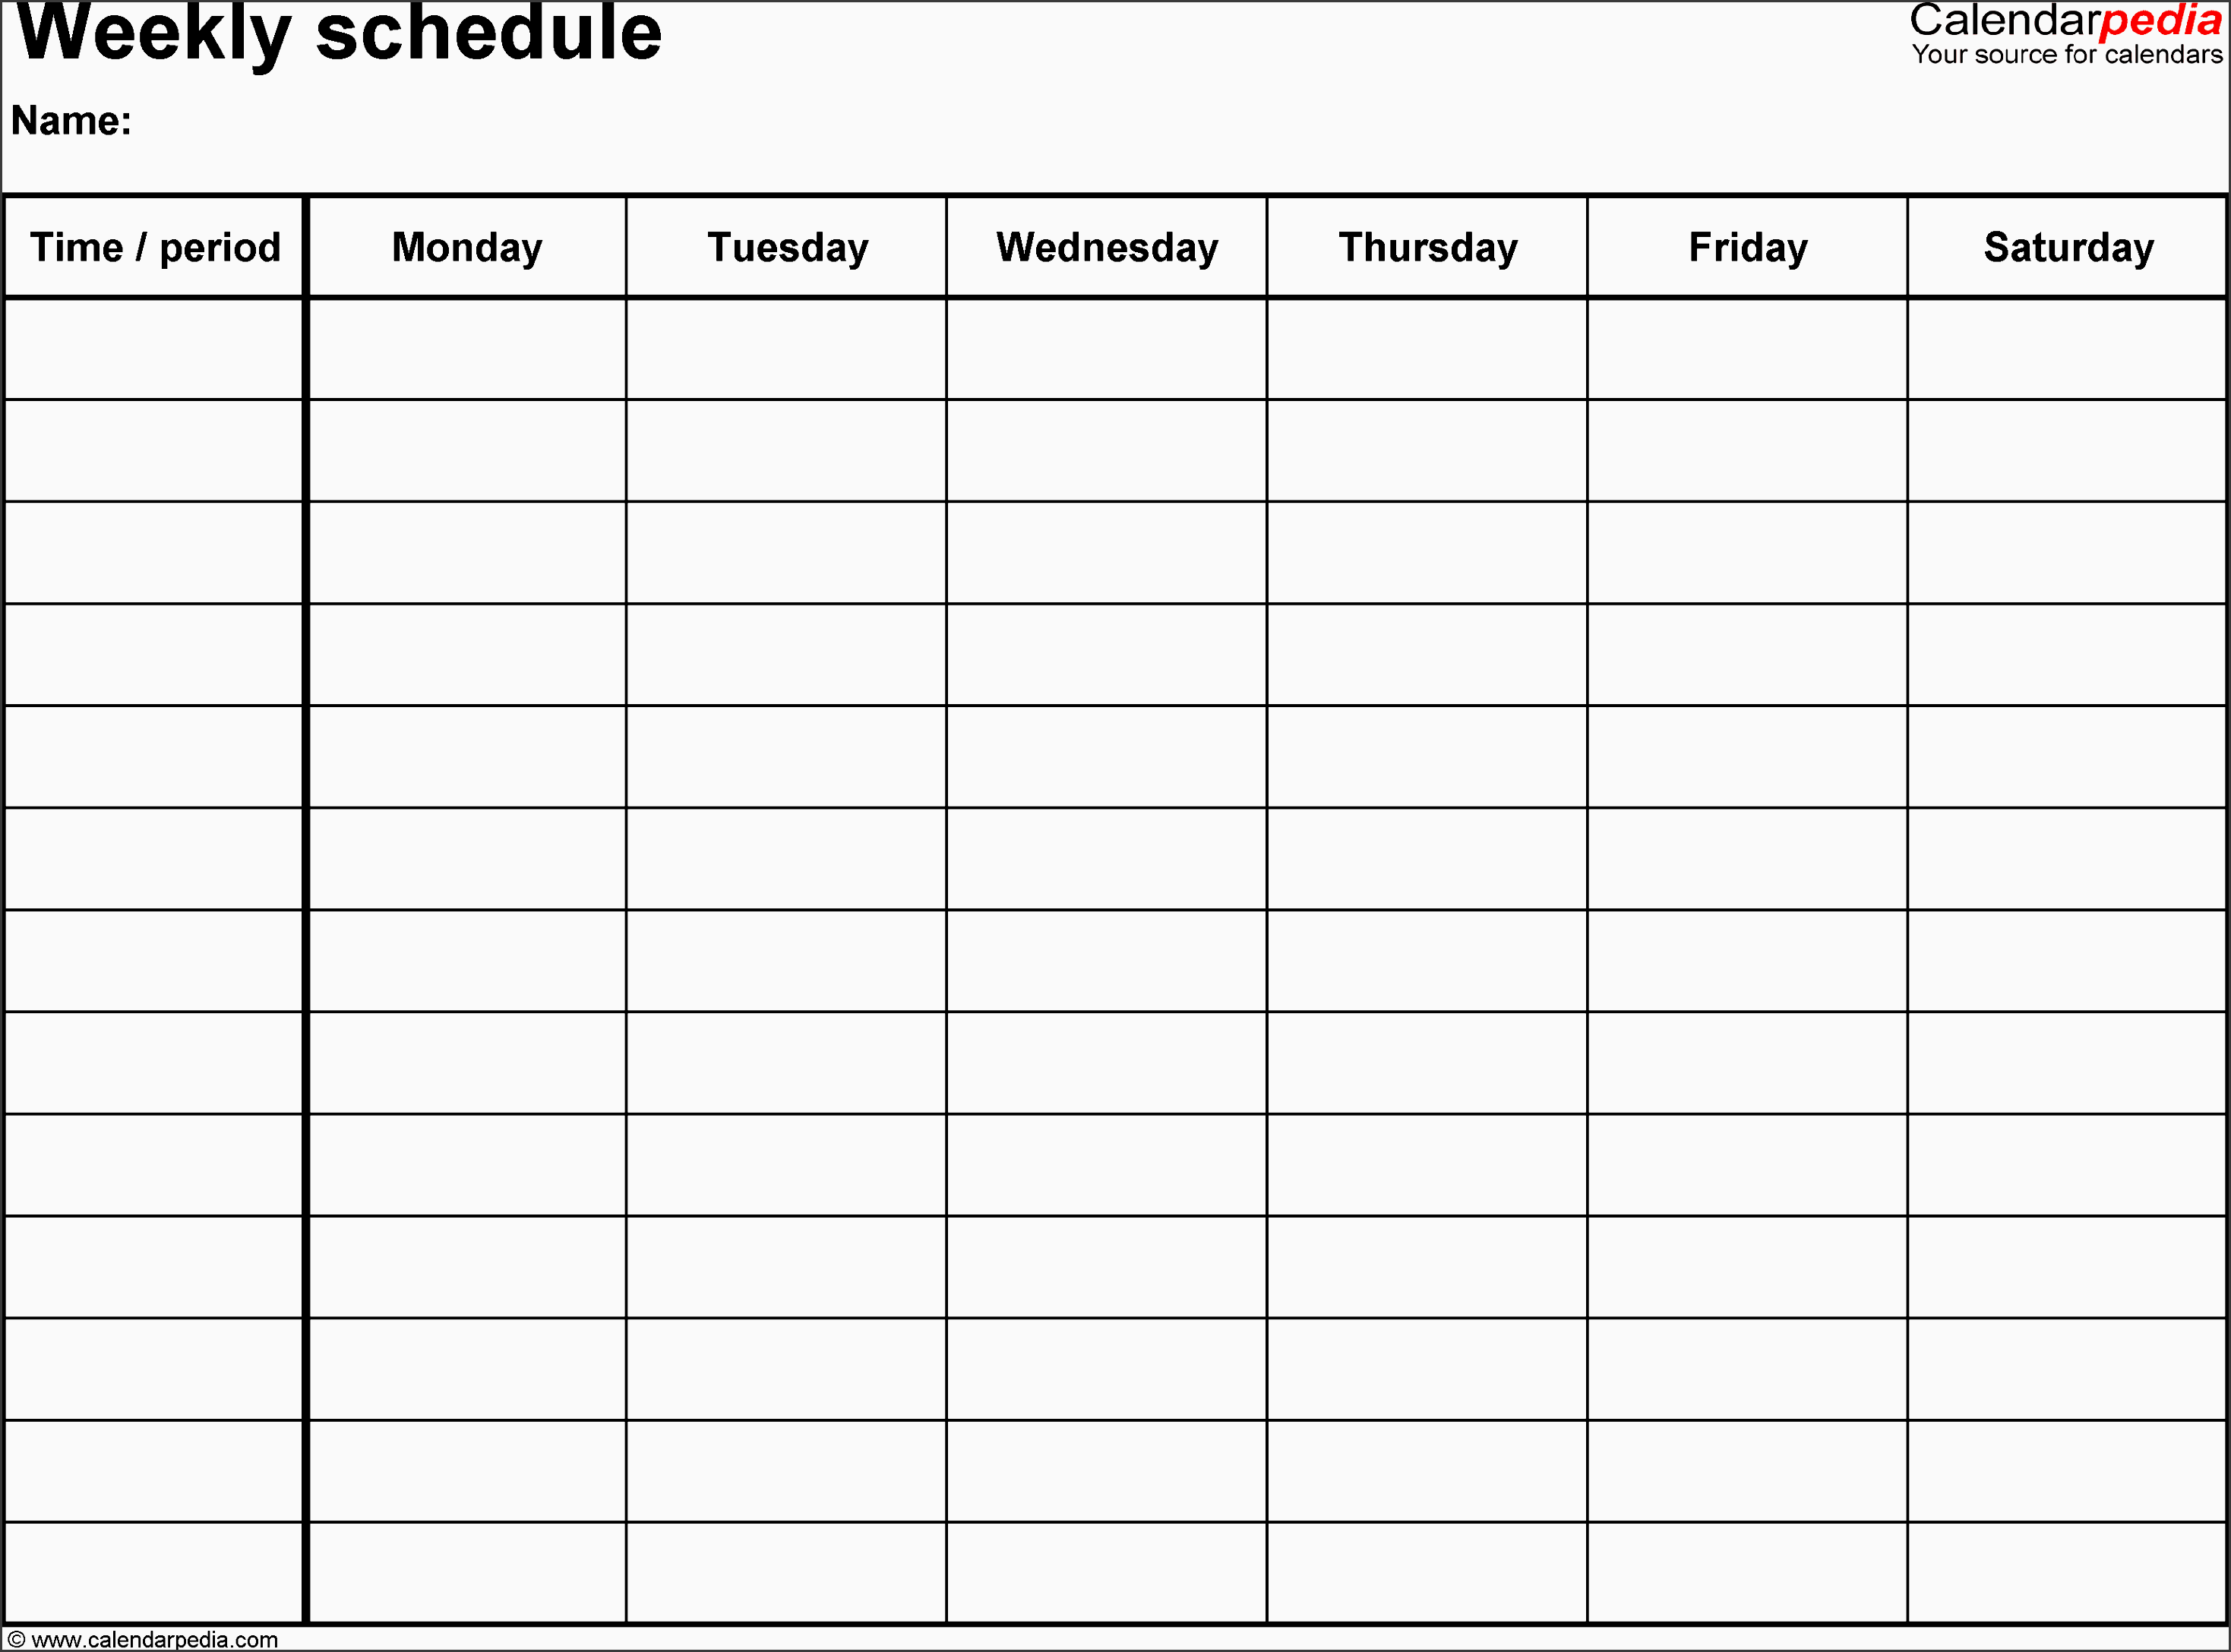 weekly schedule template for excel version 8 landscape 1 page monday to saturday